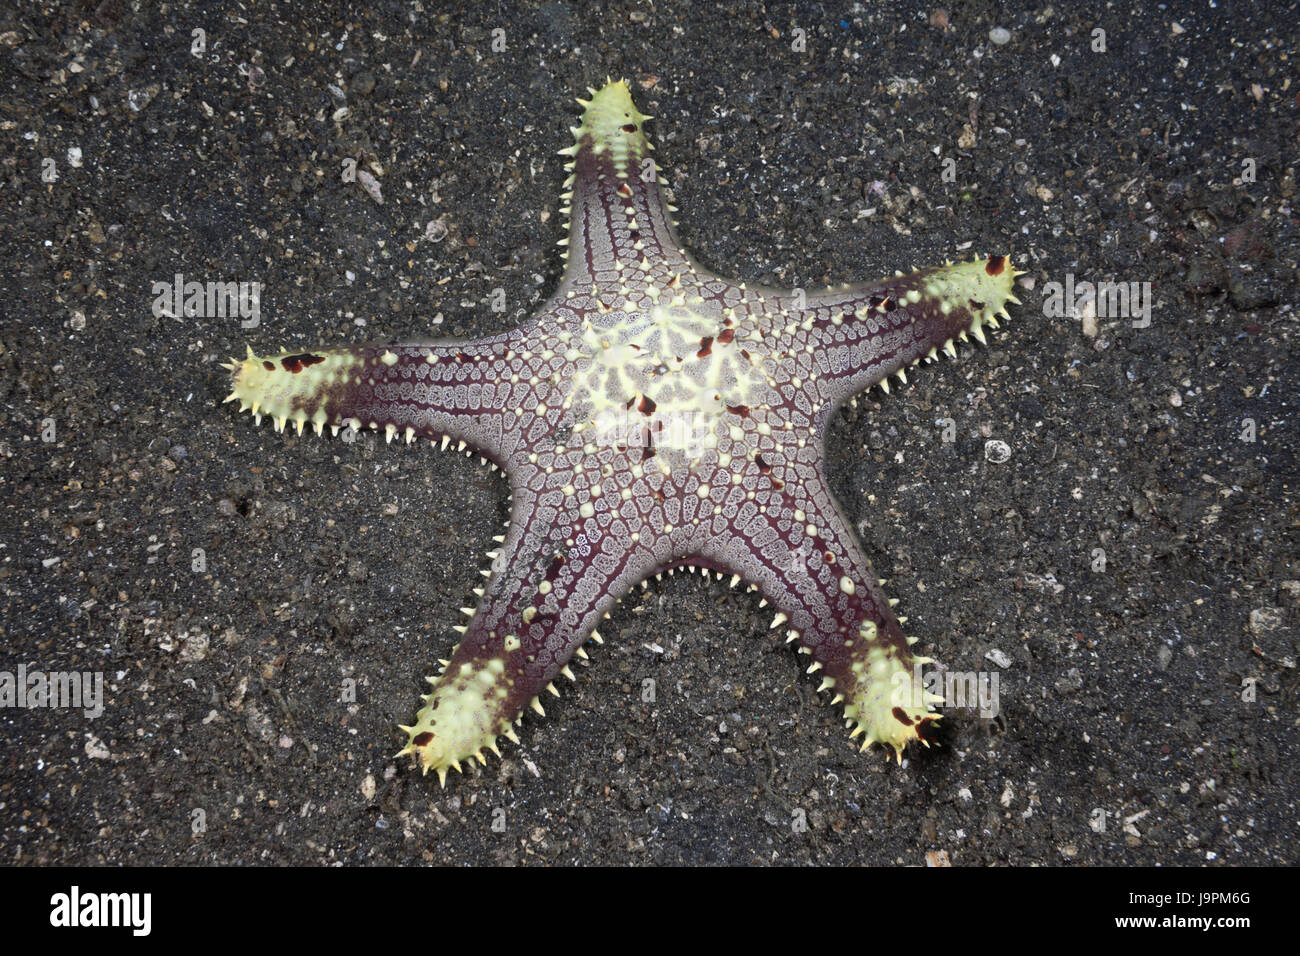 Starfish on Sand ground,Lembeh Strait,the north Sulawesi,Indonesia, - Stock Image